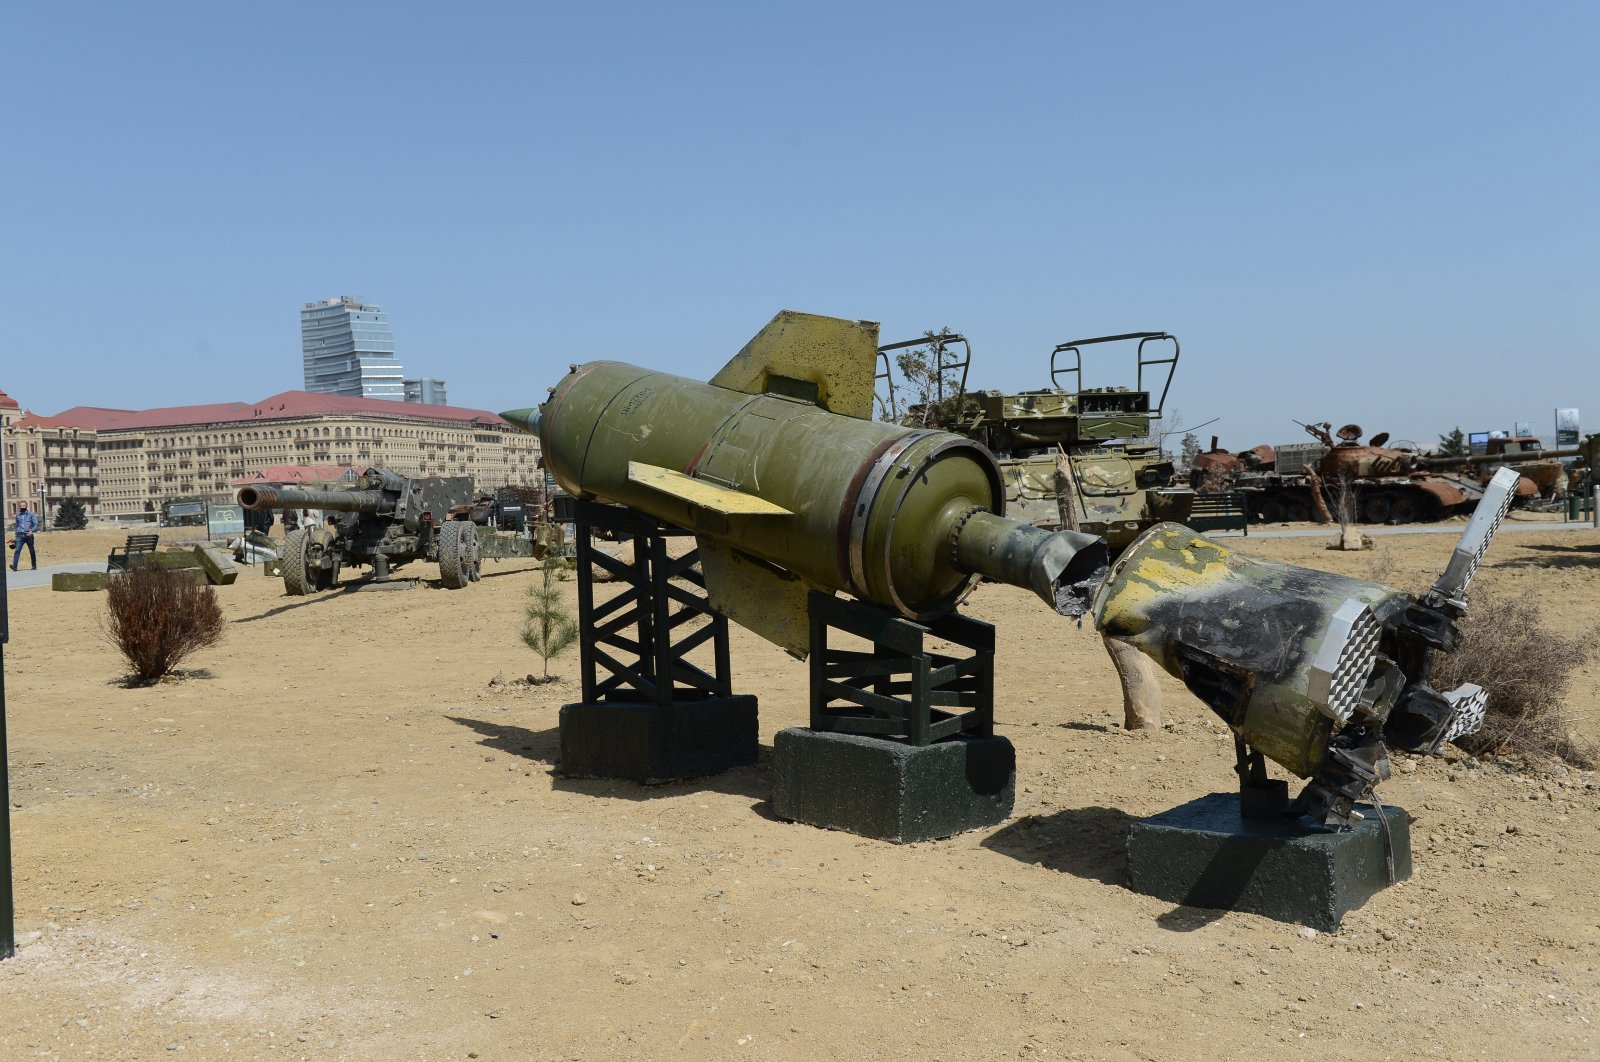 Armenian military equipment captured by Azerbaijani forces displayed in an open-air museum in Baku, Azerbaijan, April 13, 2021. (IHA)